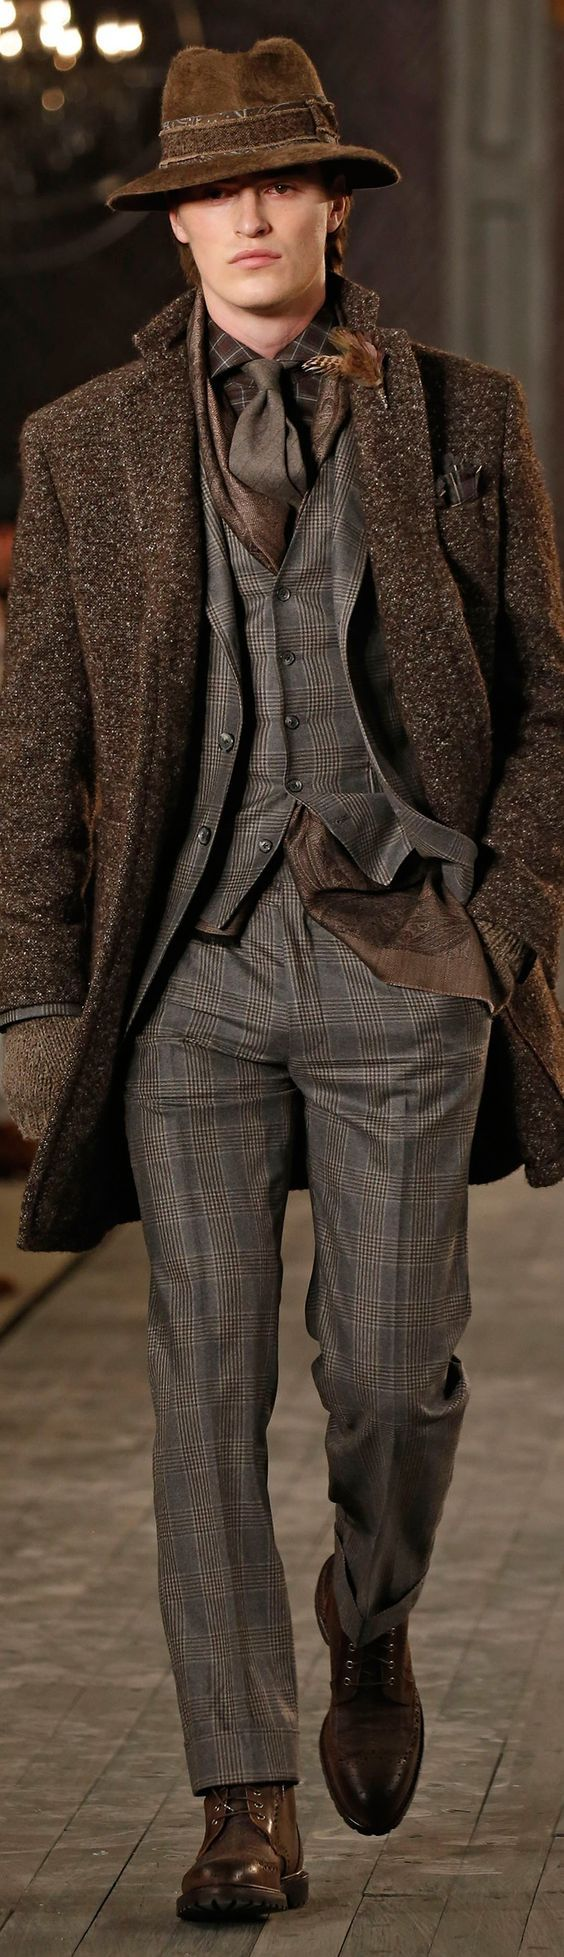 Joseph Abboud Fashion Show & More details